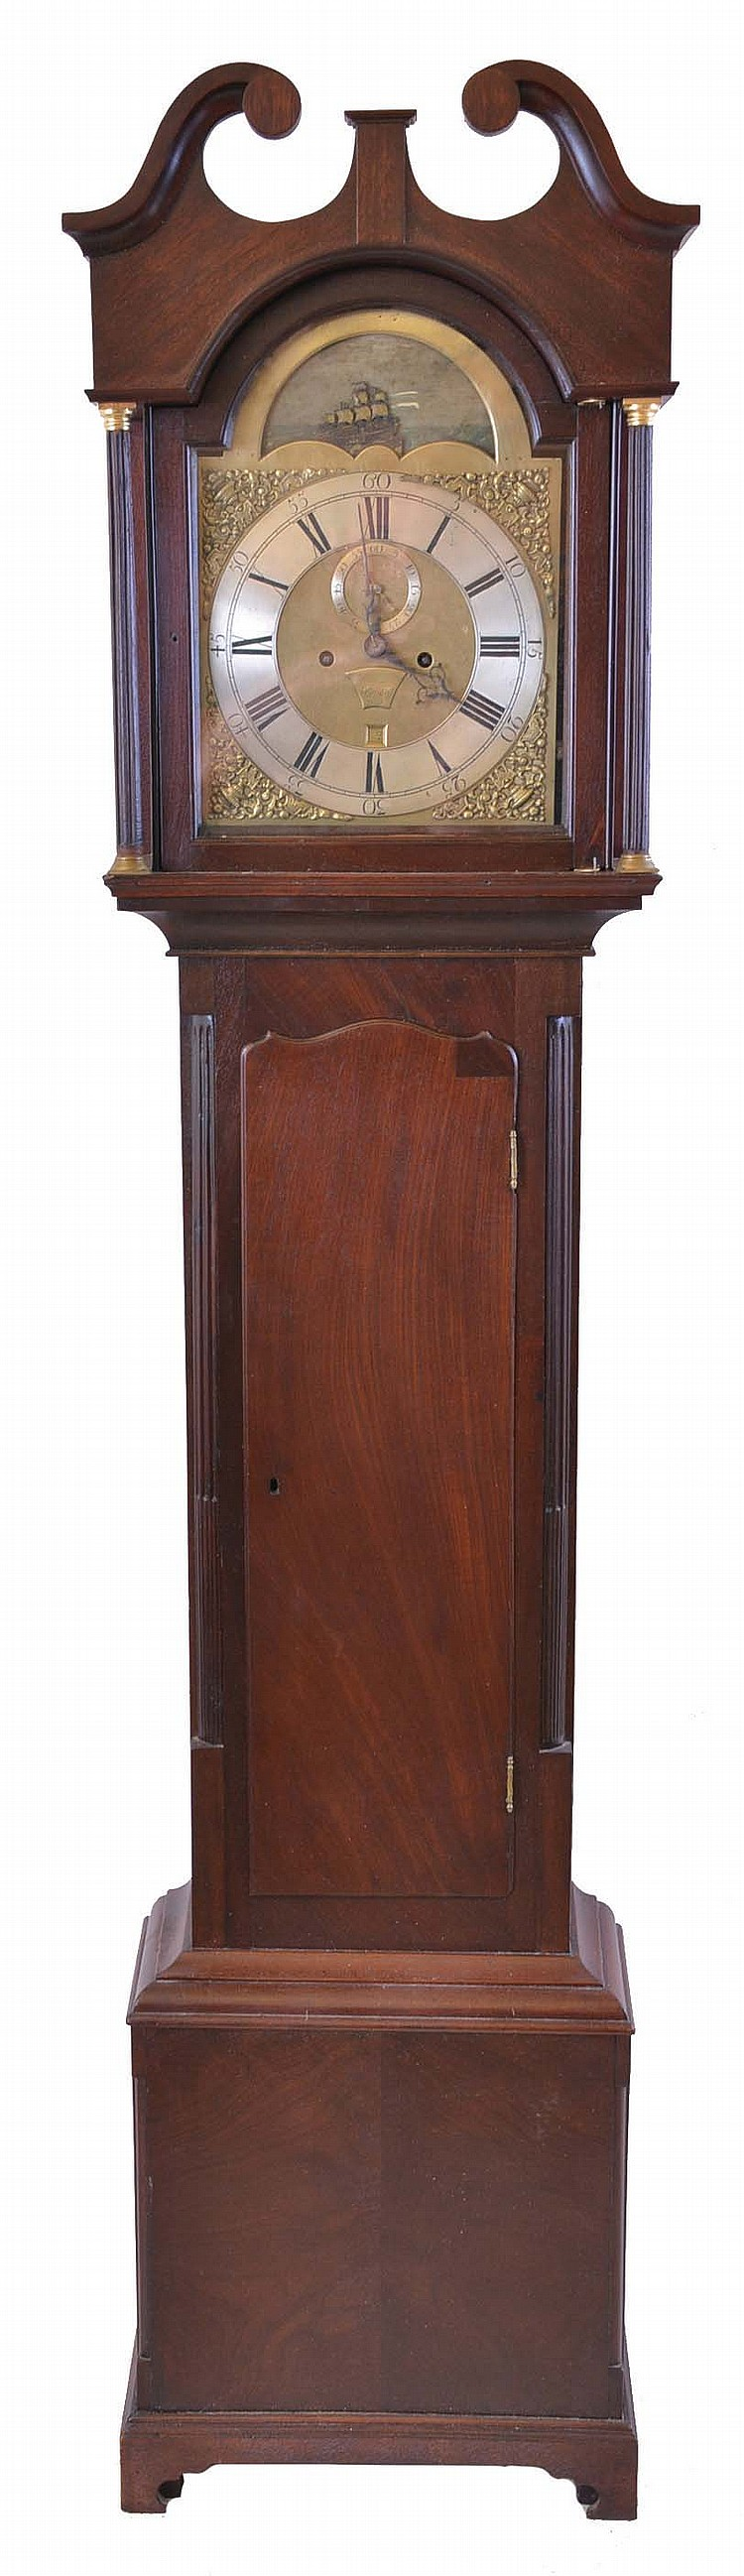 England, tall clock movement, 8 day, time and strike, weight driven movement, c. 1775 in an English or Scottish mahogany case with broken arch top, with reeded columns flanking hood and reeded corner columns flanking trunk door, c. 1800. The brass